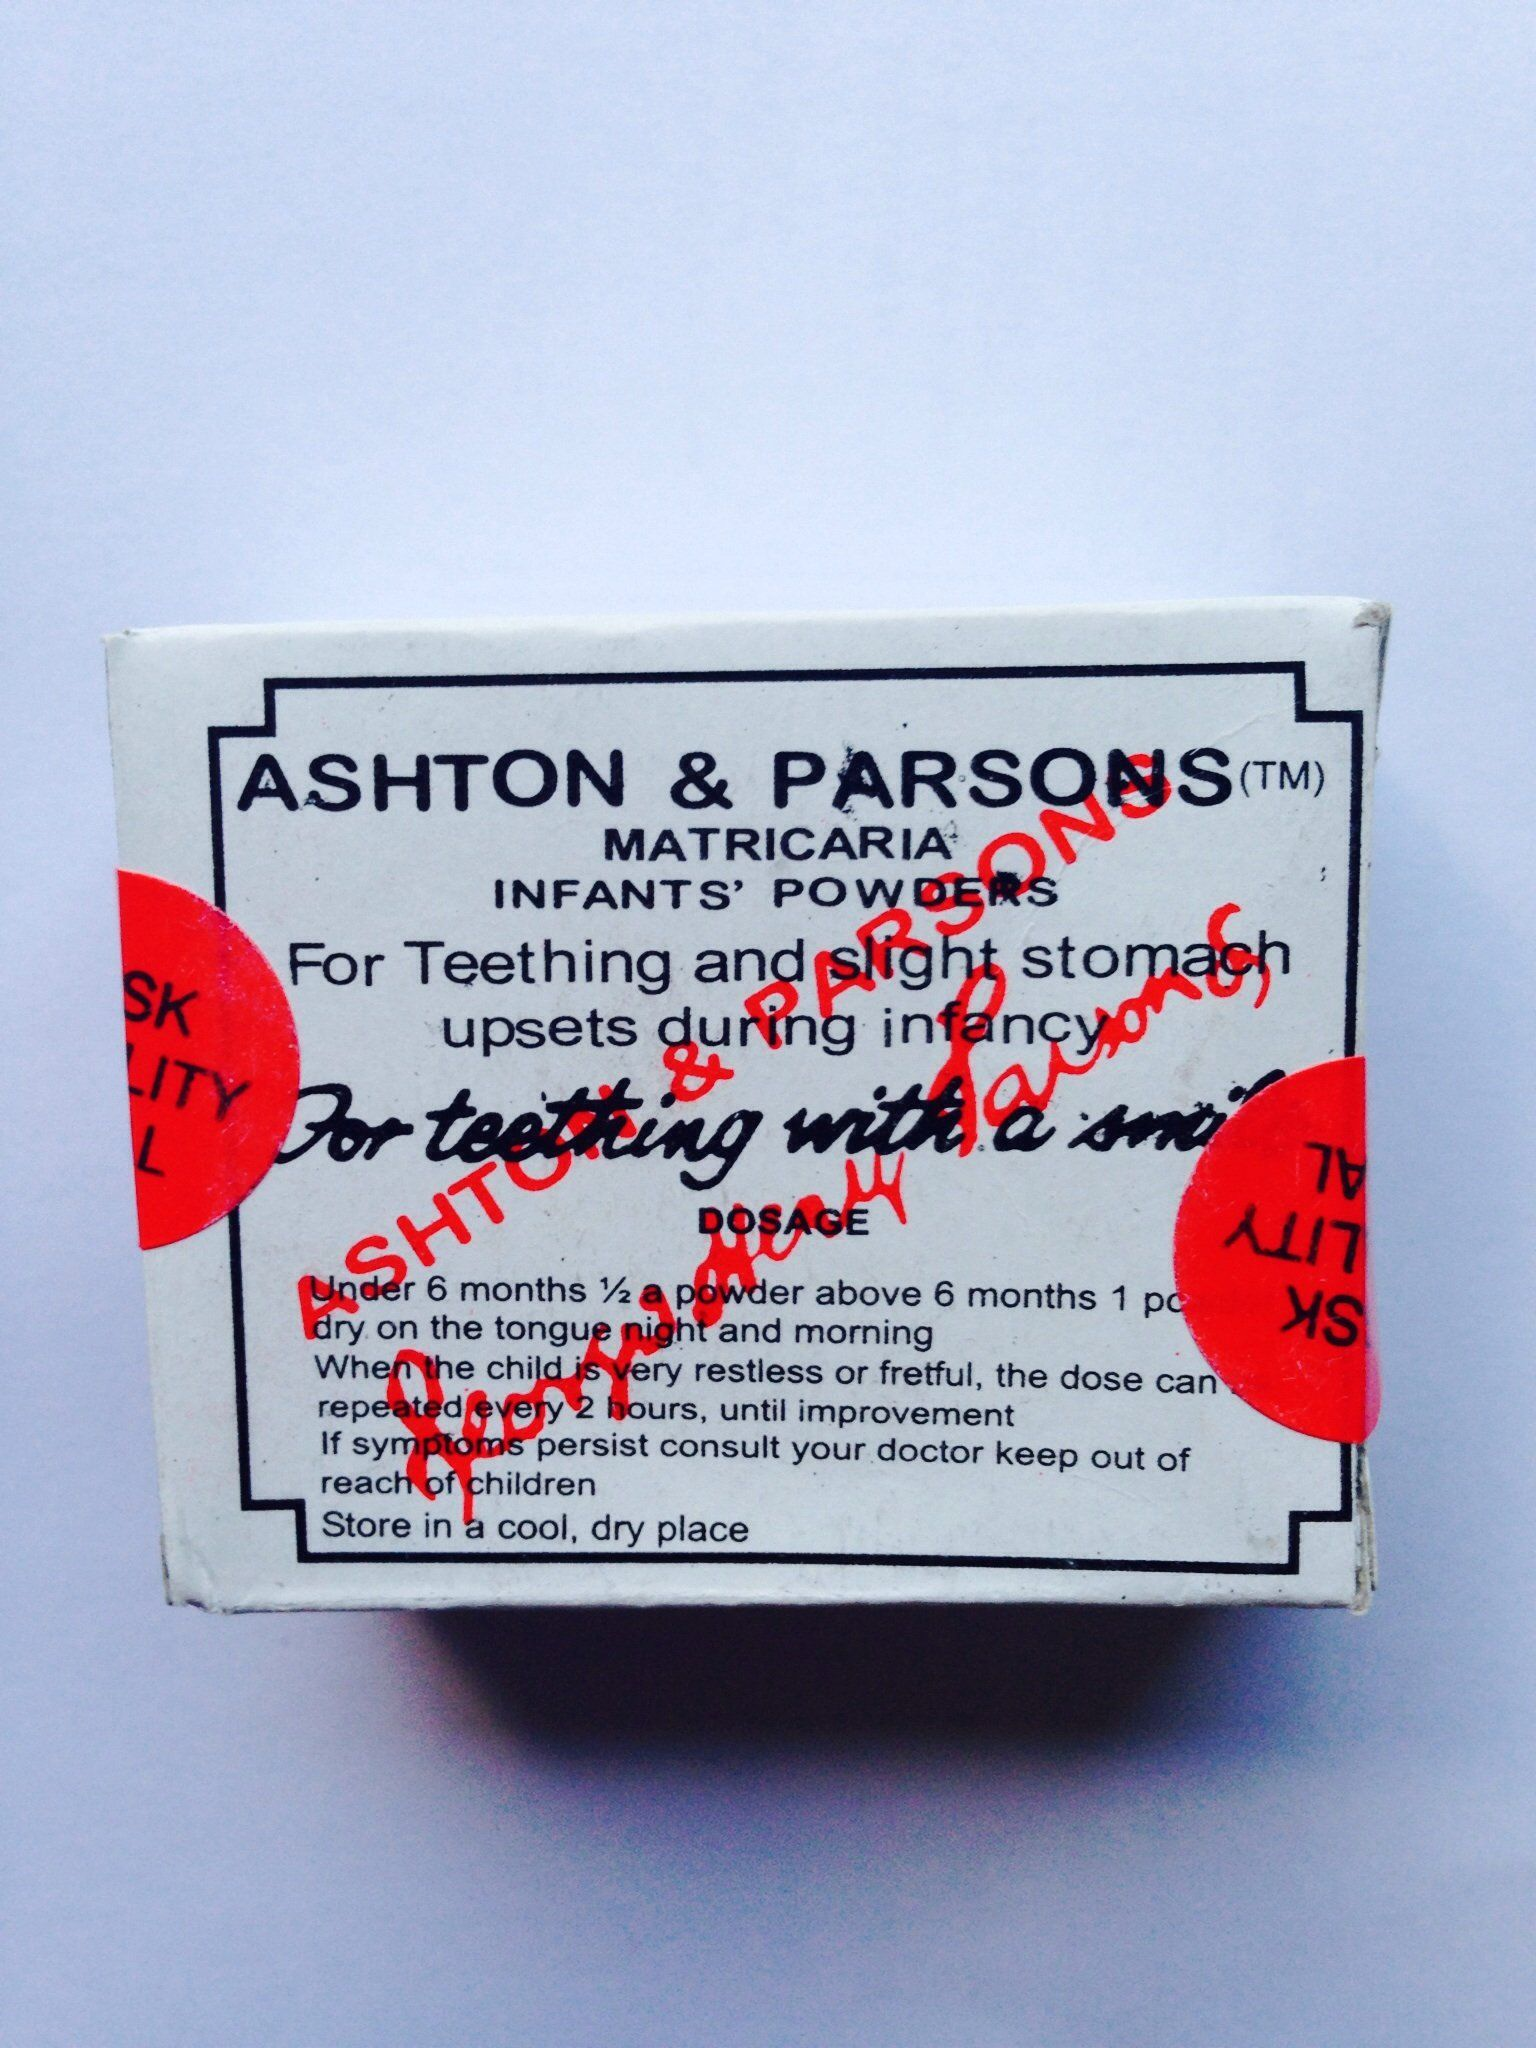 Ashton And Parsons Infant Powders For Teething 20: Amazon.co.uk: Health & Personal Care